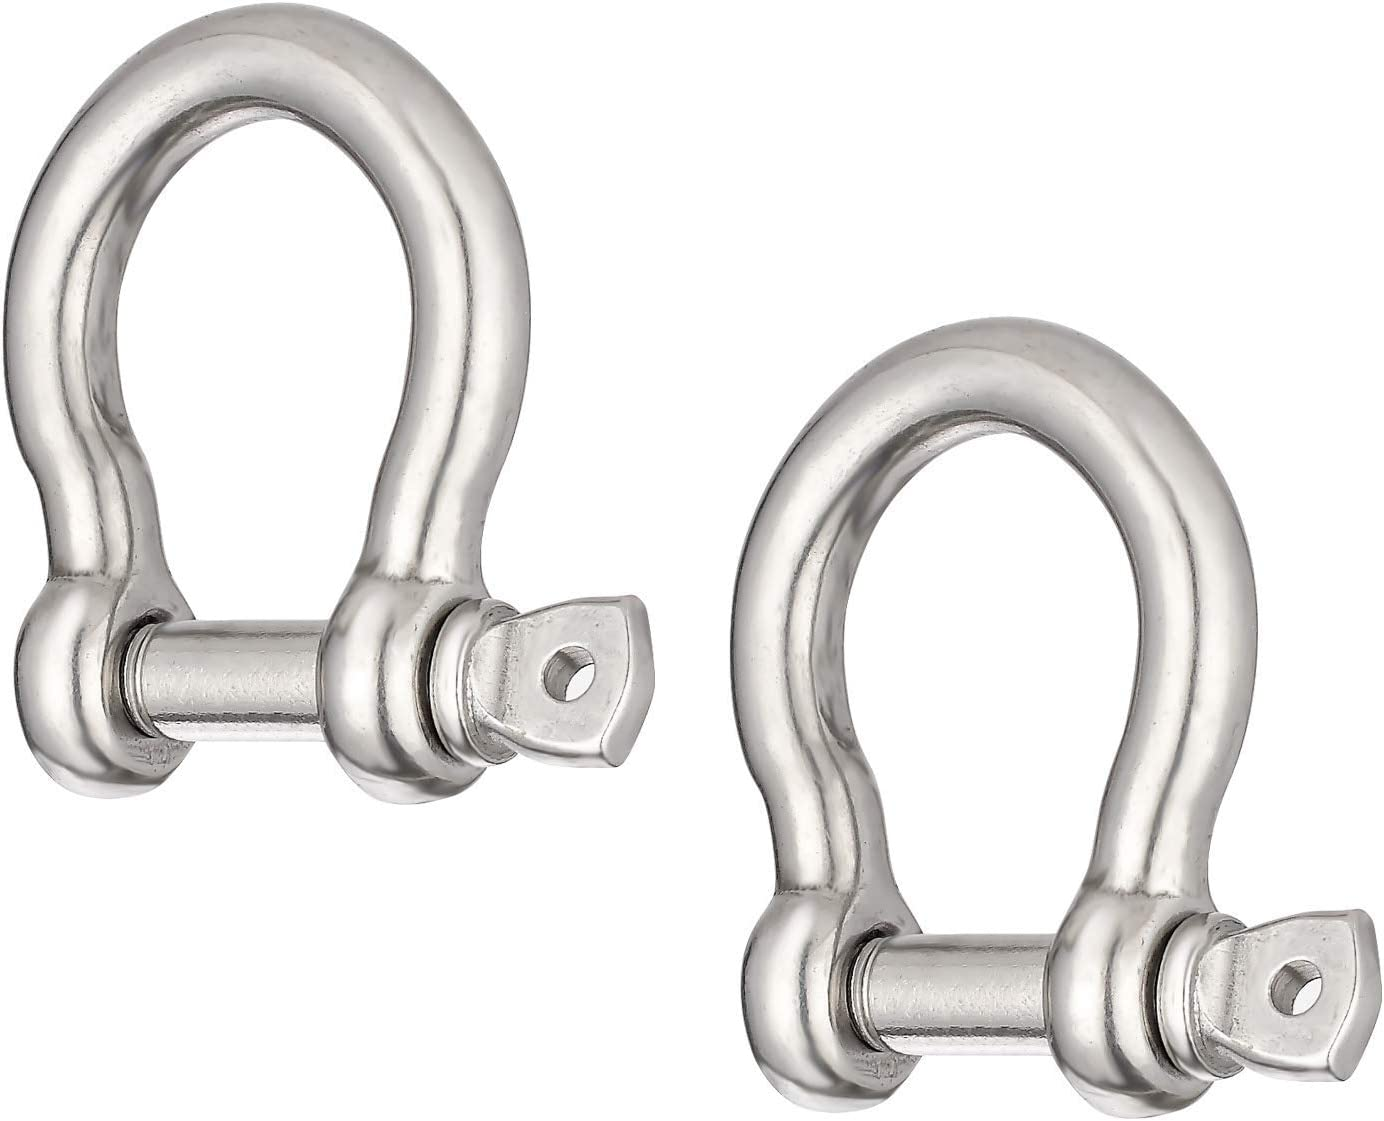 OWAYOTO El Paso Mall Screw Pin Anchor Shackle 1 2 304 12mm Stainless Super Special SALE held Ste Inch